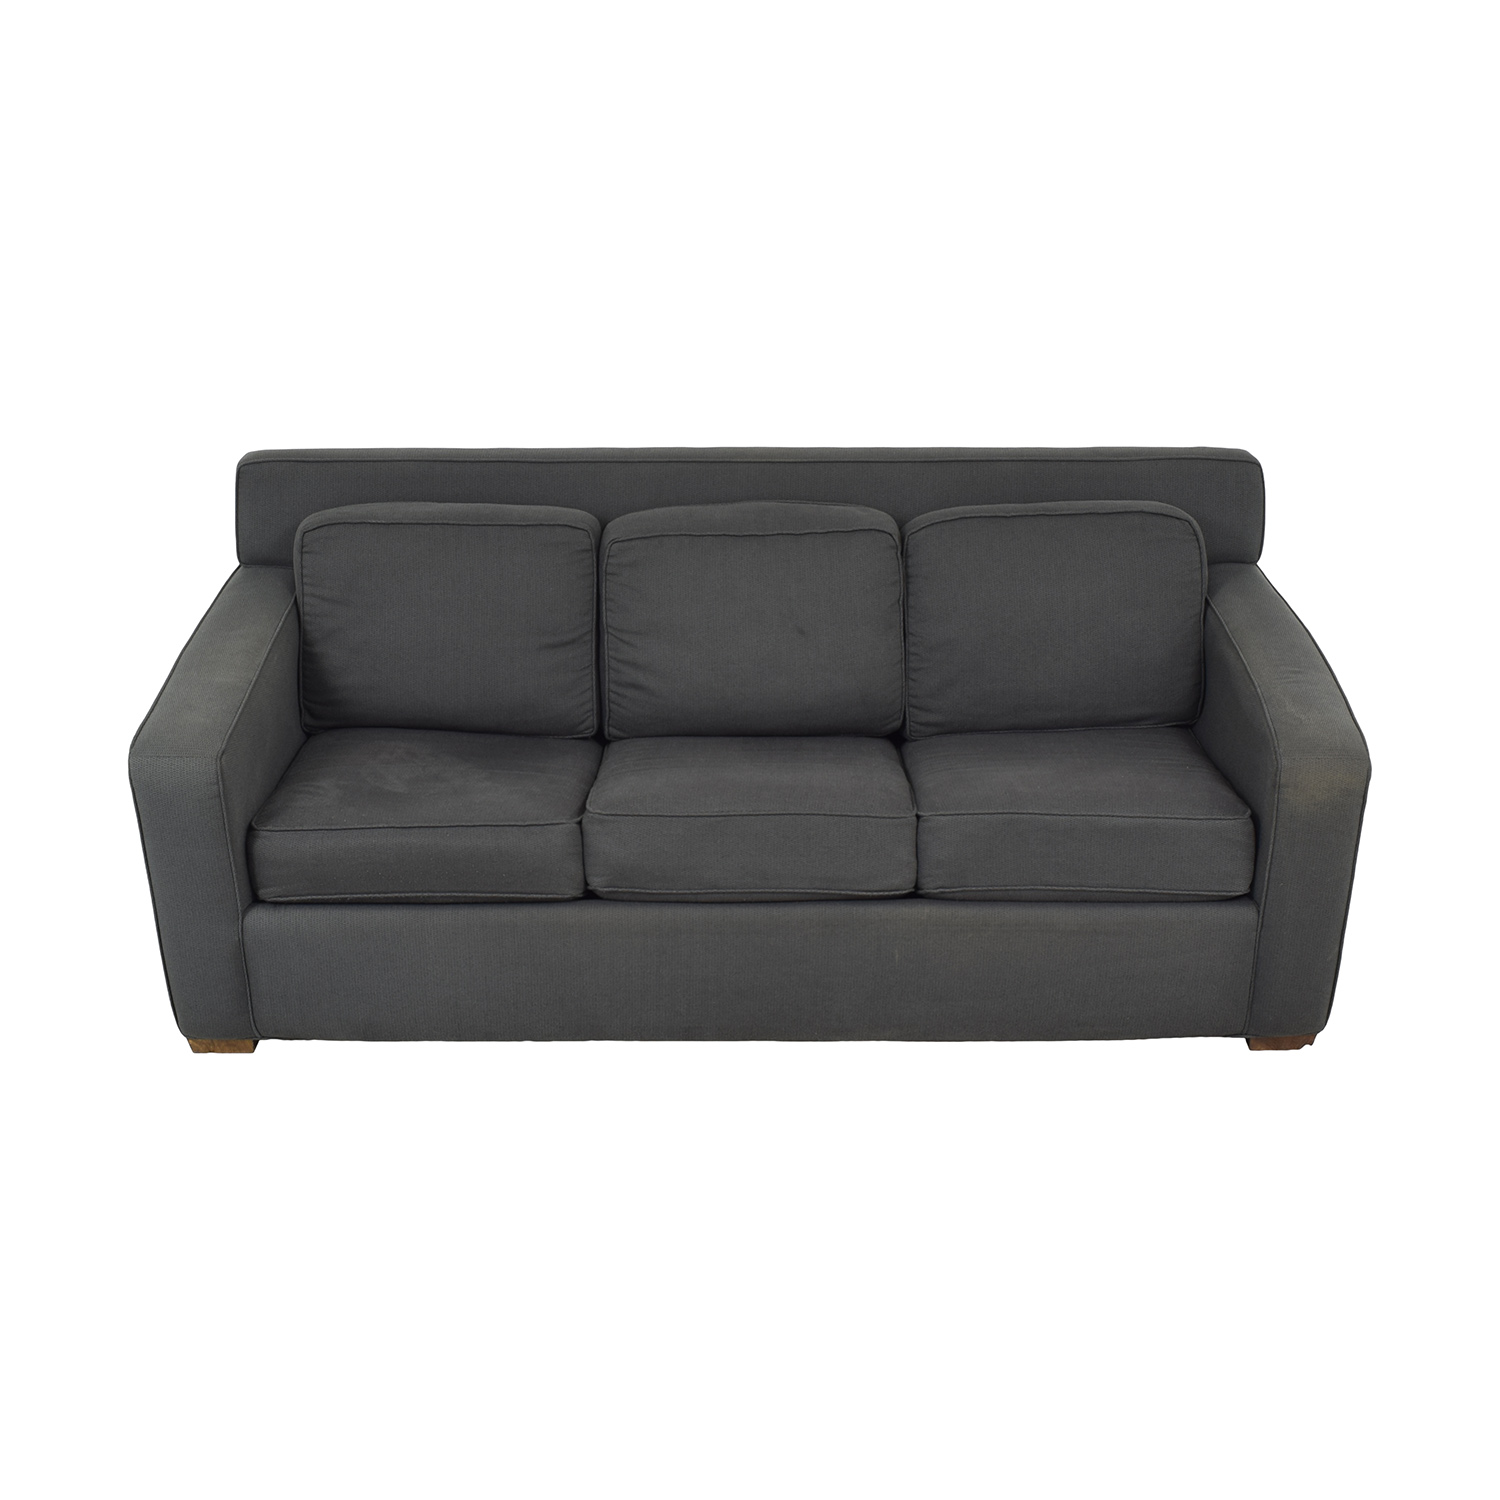 Younger Furniture Younger Furniture Sleeper Sofa second hand